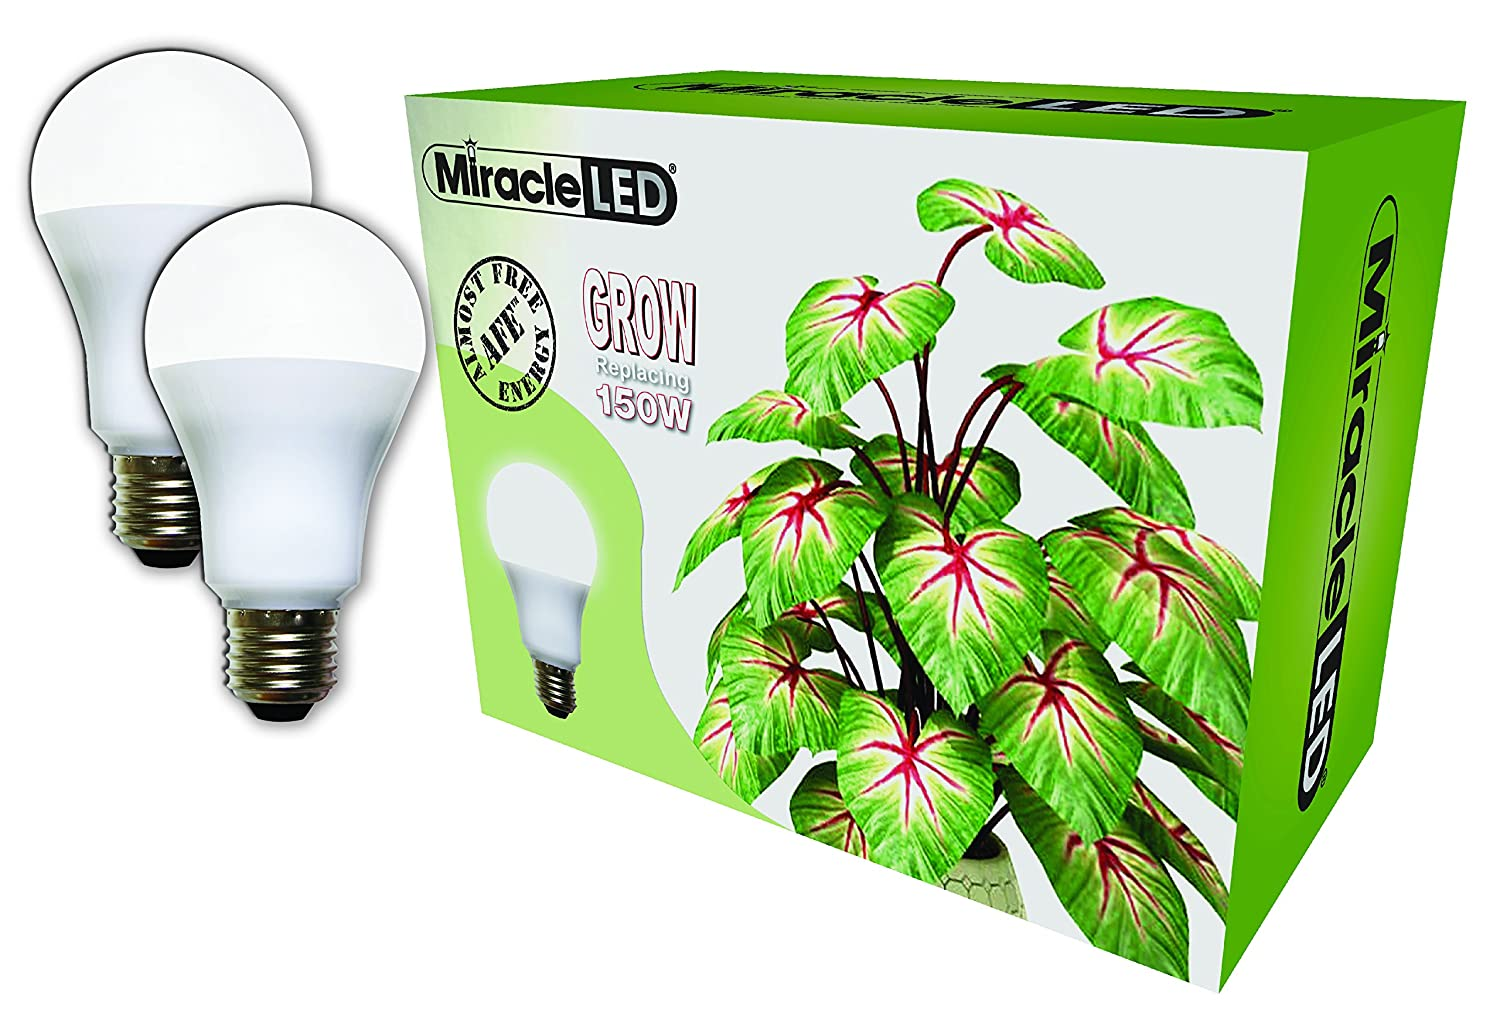 Miracle LED Almost Free Energy 150W Commercial Hydroponic Ultra Grow Lite - Daylight White Full Spectrum LED Indoor Plant Growing Light Bulb For DIY Horticulture & Indoor Gardening (604305) 2Pack